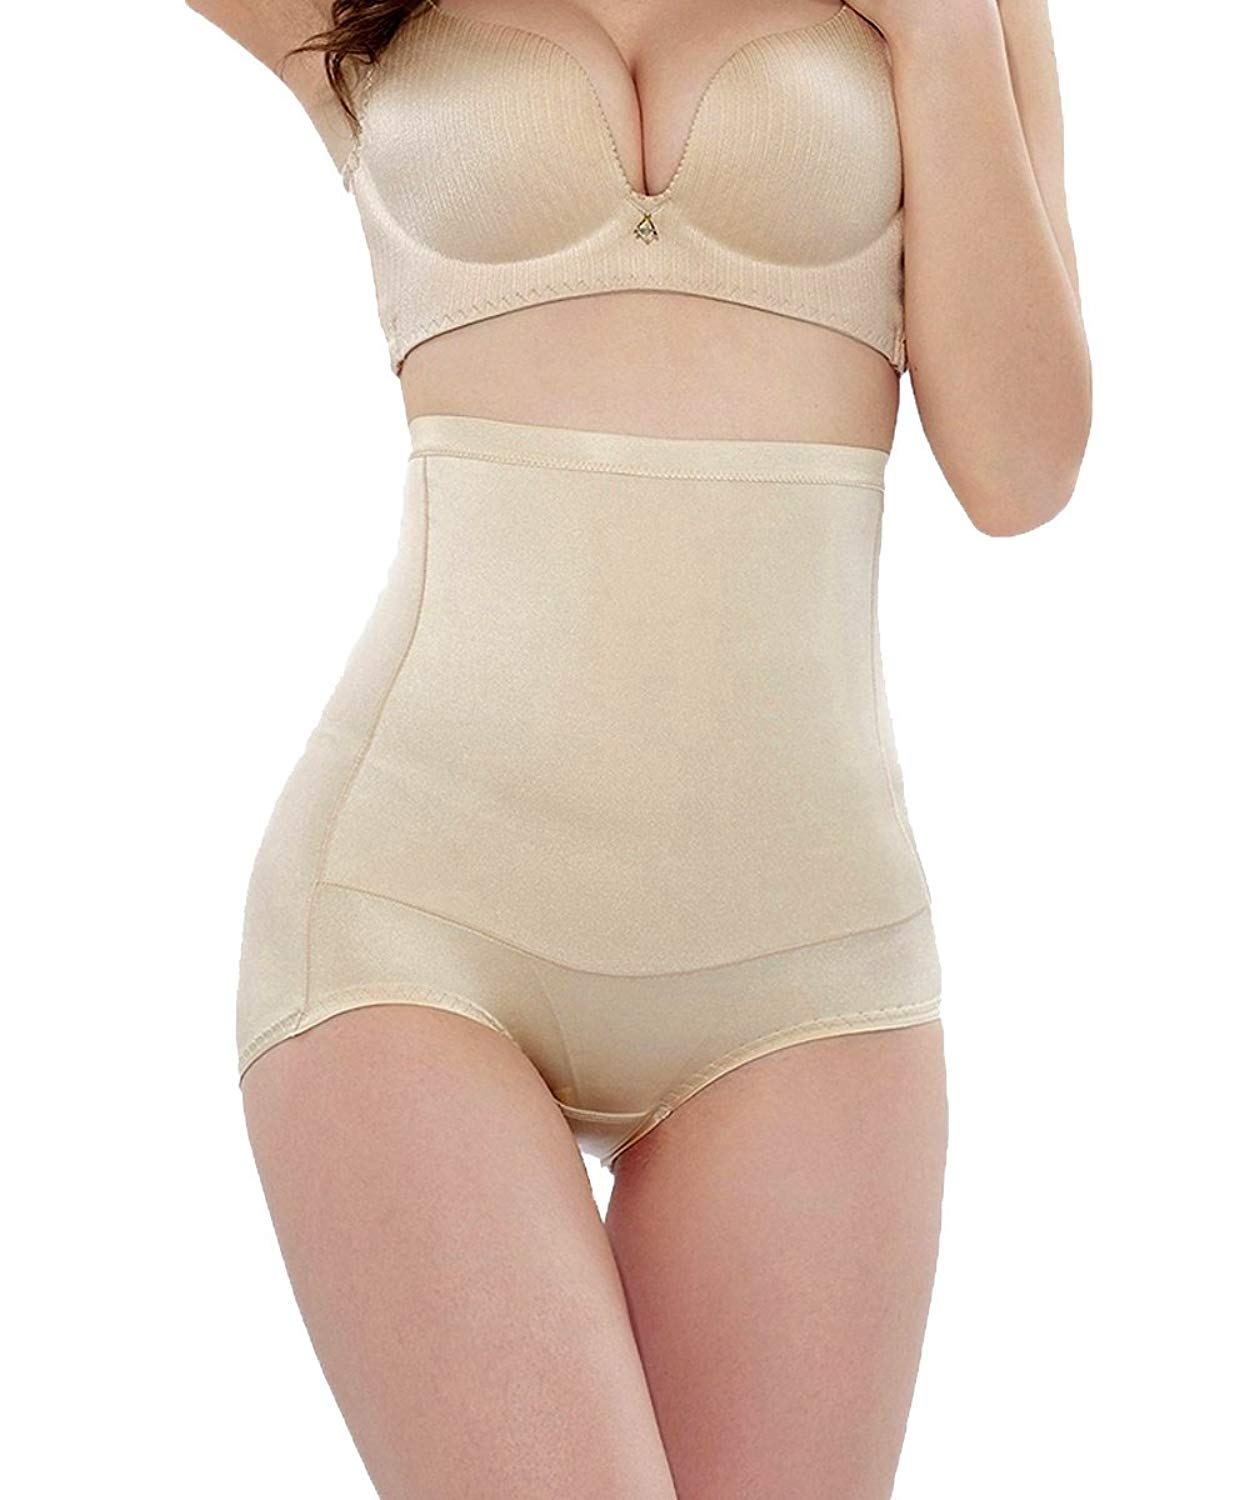 b02a0222e37ed Get Quotations · OLIKEME Women s Shapewear